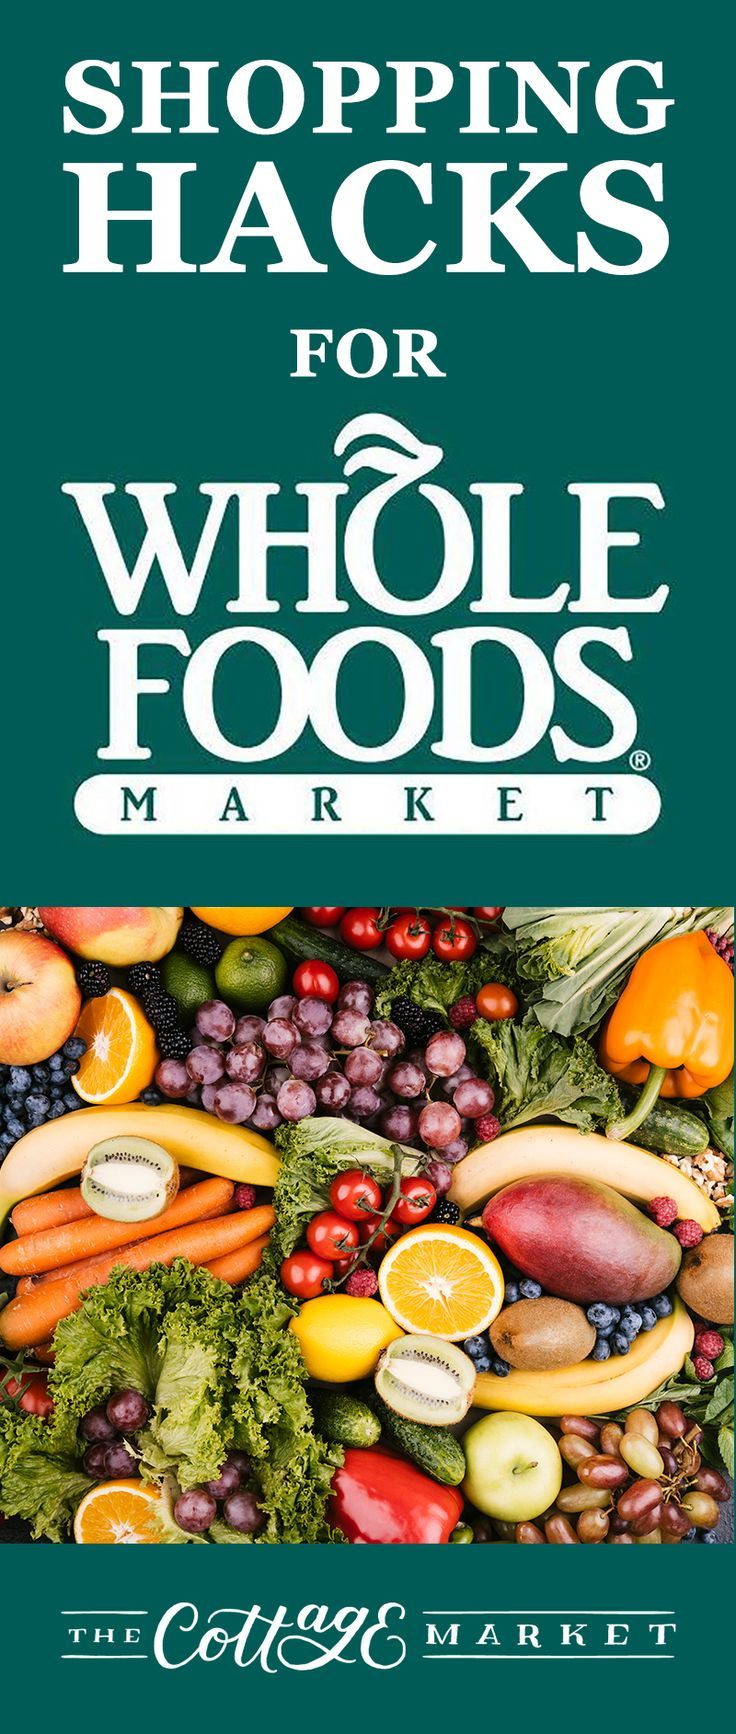 Shopping Hacks for Whole Foods Whole food recipes, Food